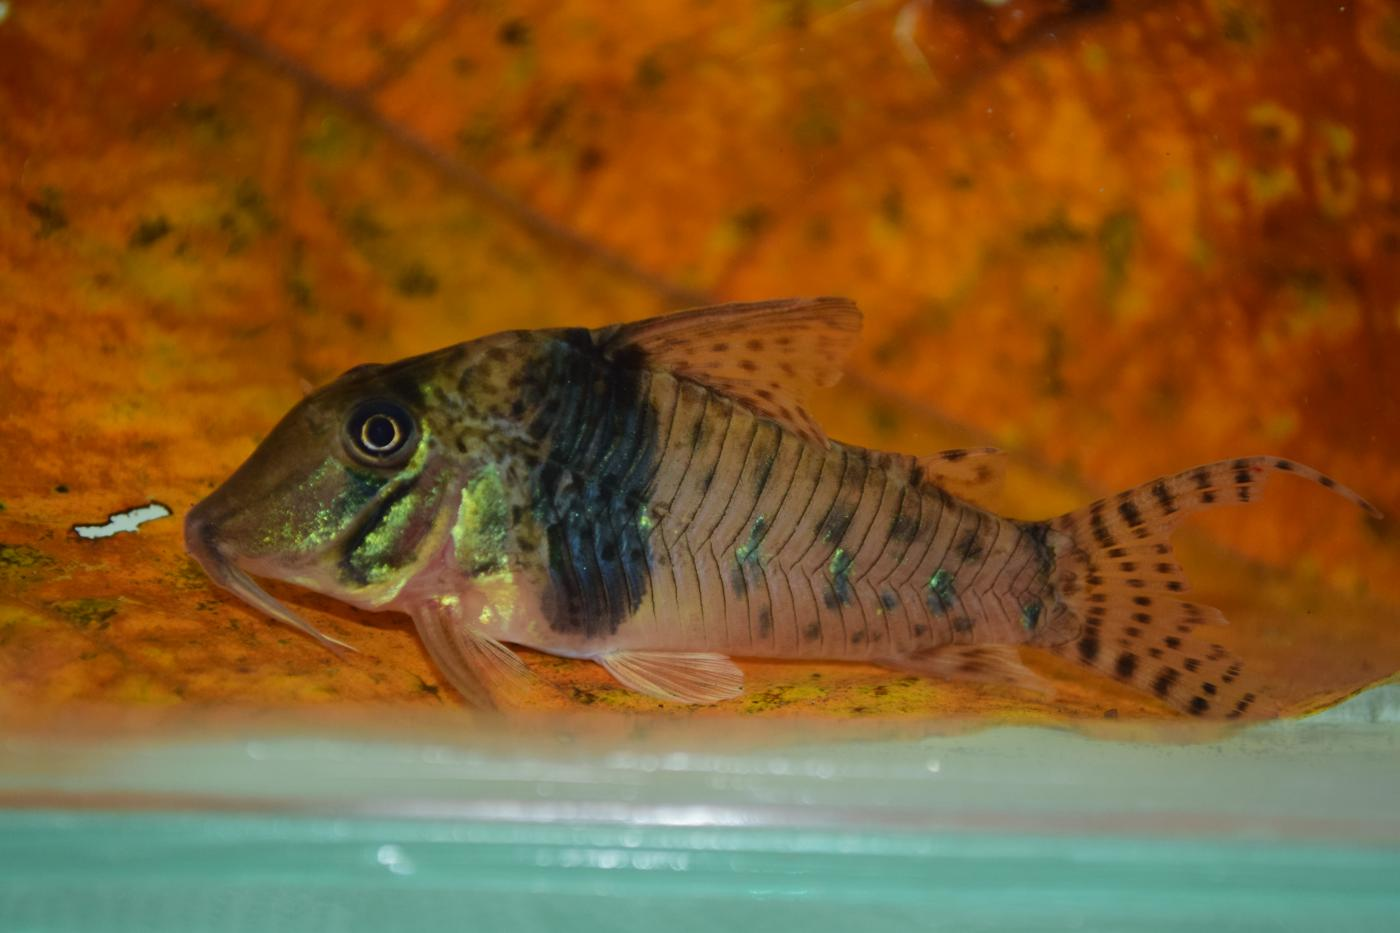 A small catfish, called a pastaza cory, with short barbels (or whiskers) extending from its mouth, small fins and a short, triangular tail. It has a thick stripe around its midsection and smaller stripes near the back of its body and on its tail